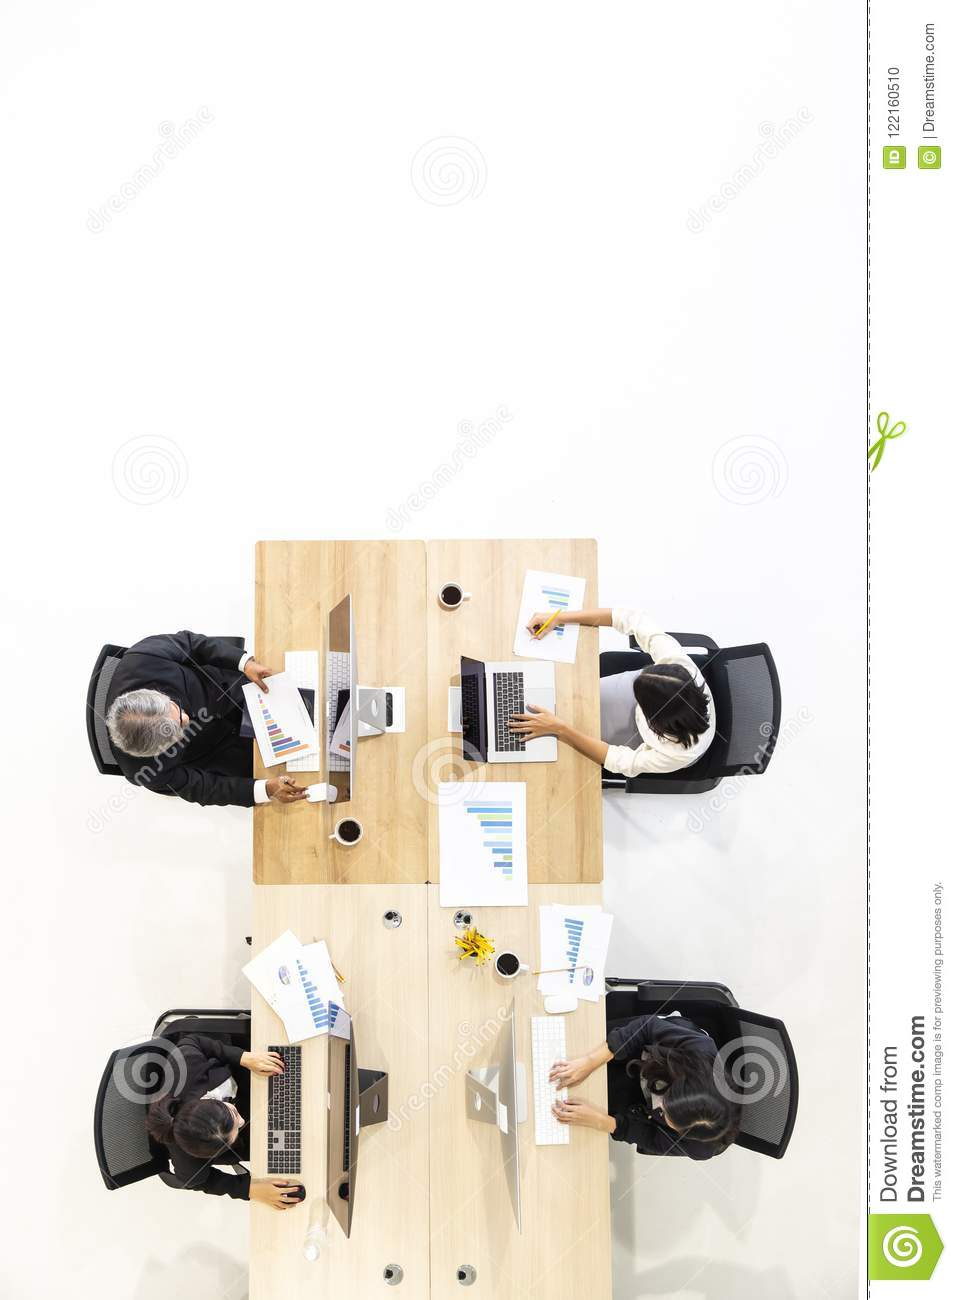 Group of business people working together in modern office,m taken from top view high angle.